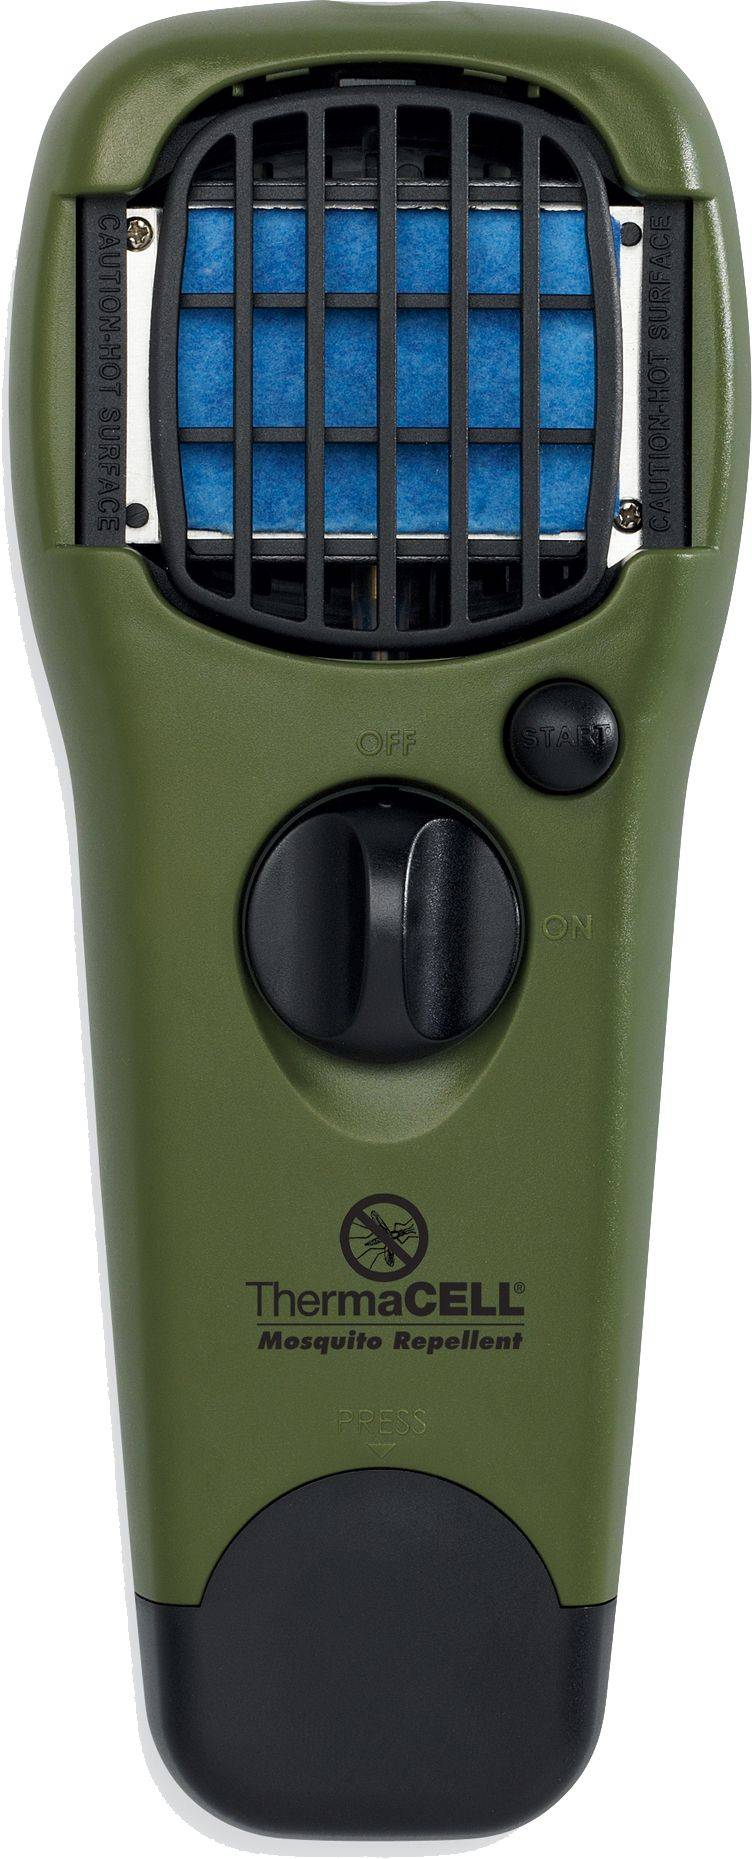 ThermaCELL Olive Appliance Mosquito Repellent Applicator